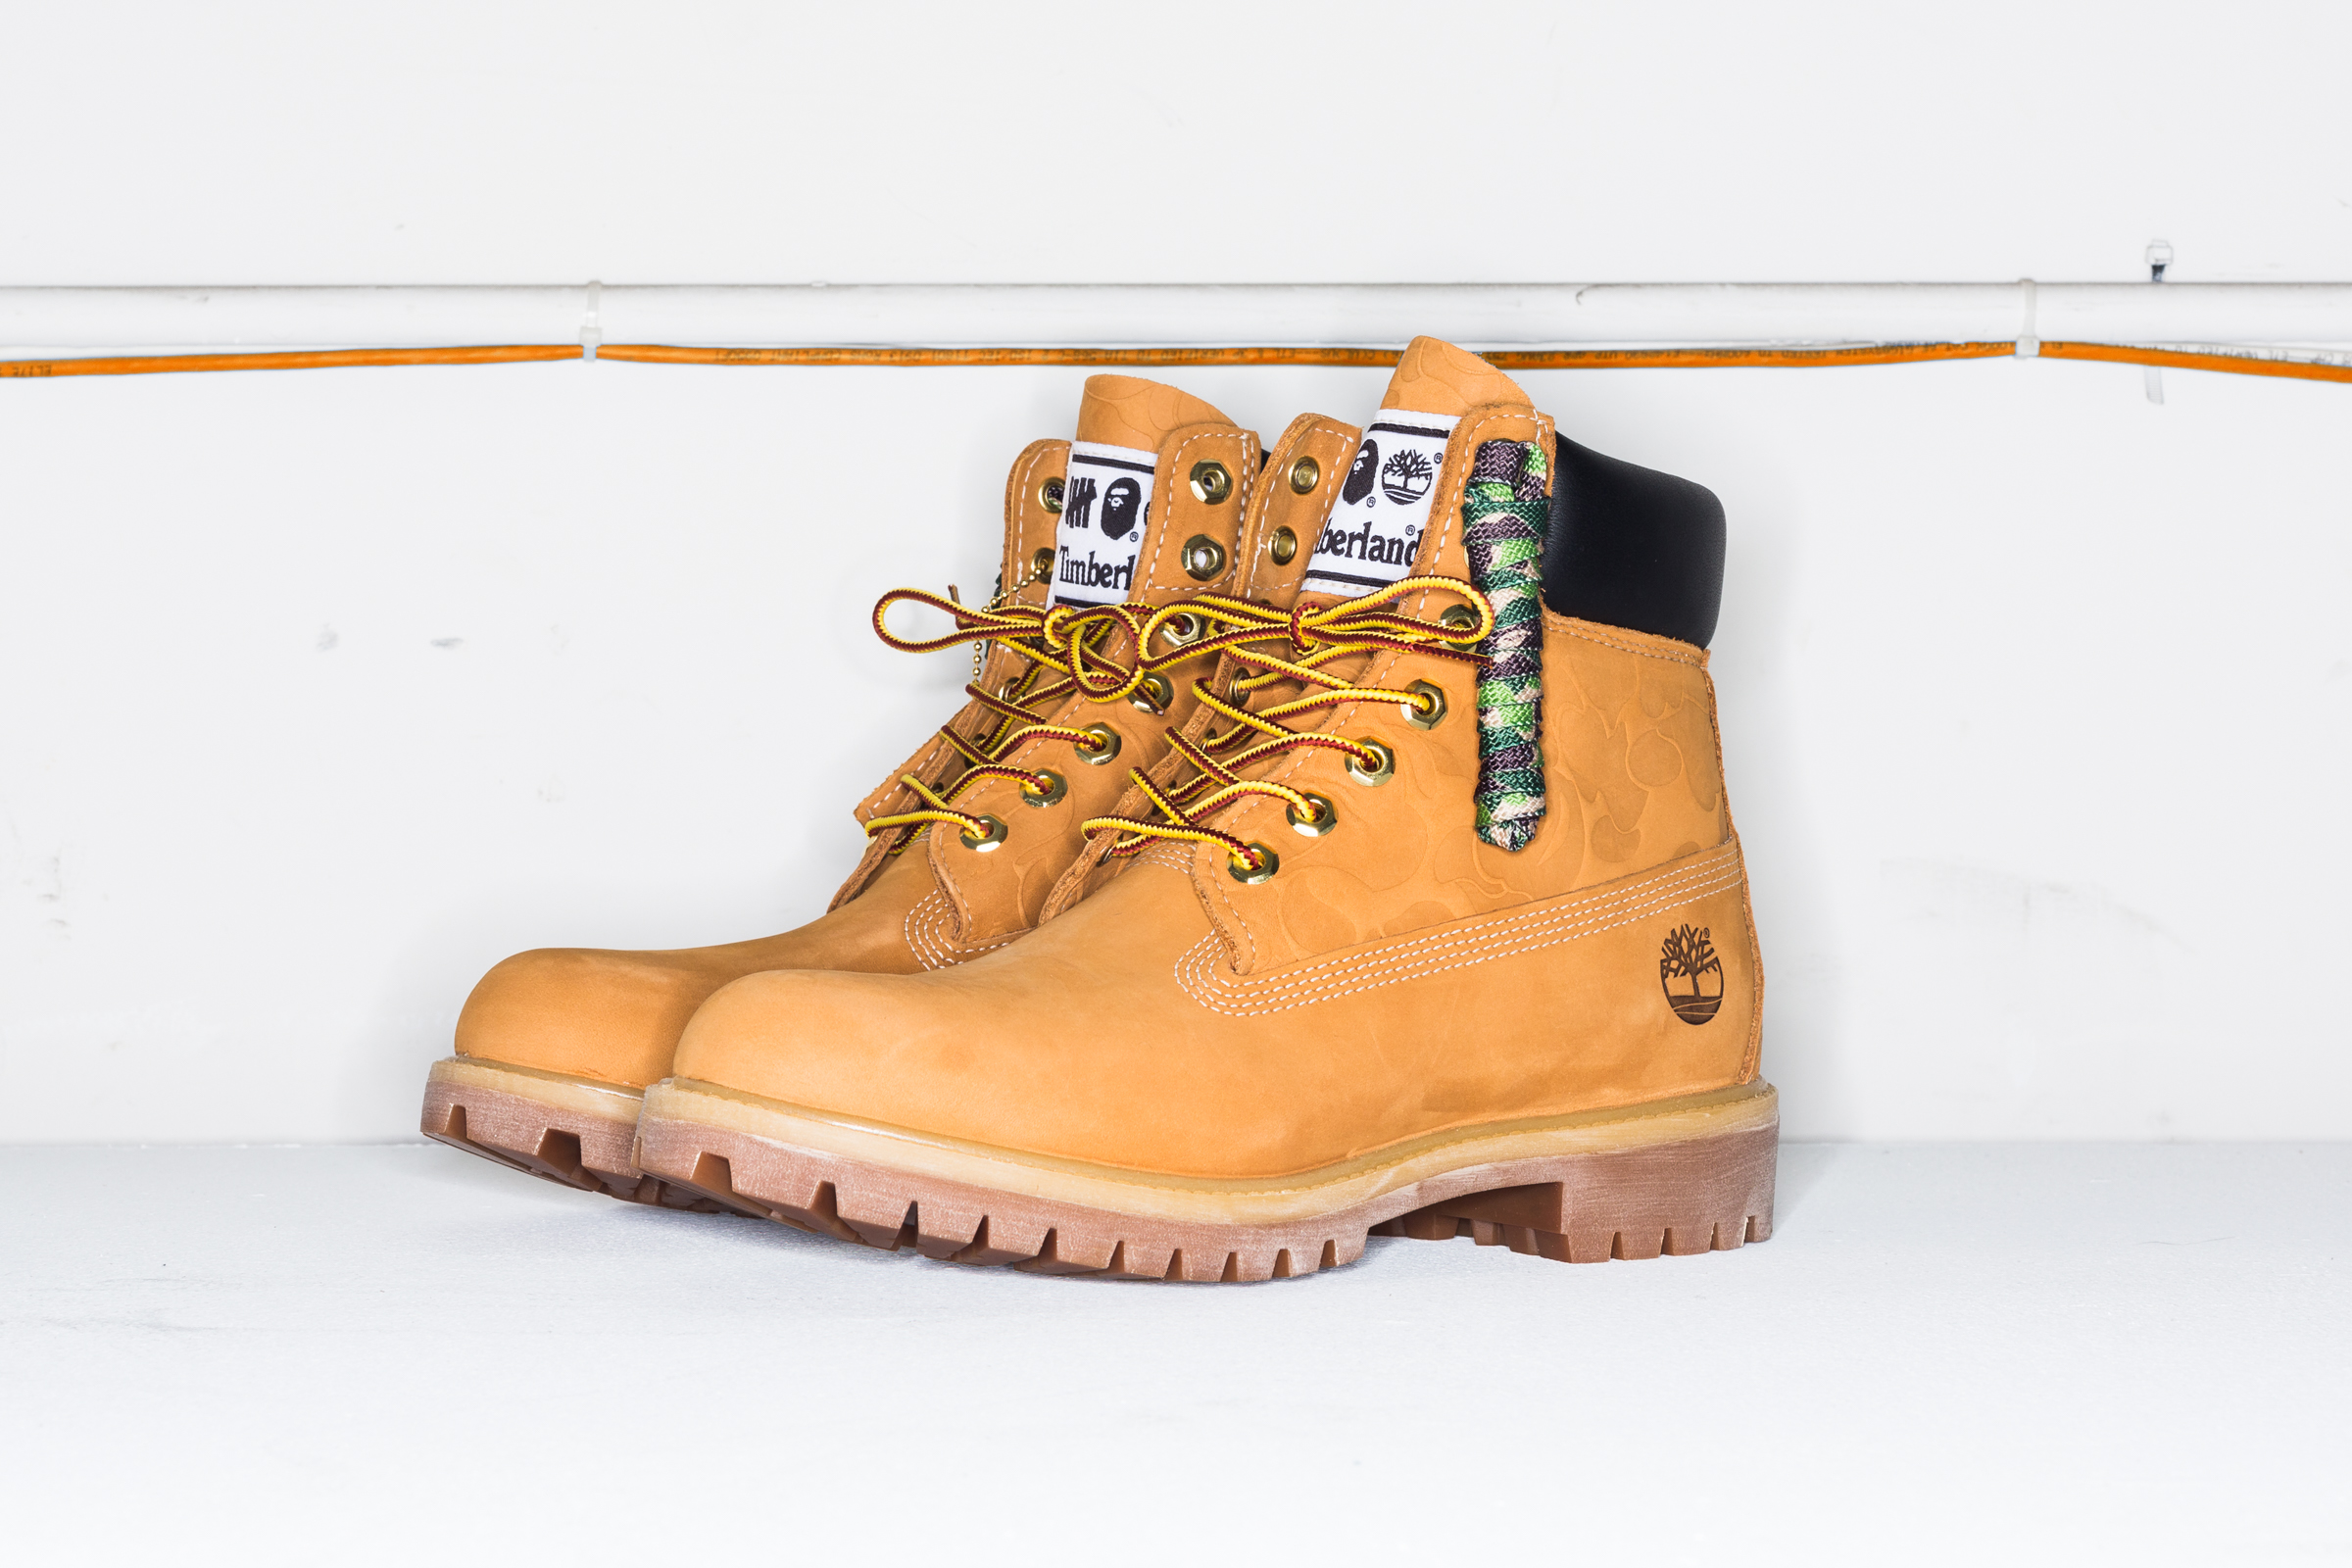 undefeated bape timberland boot release date